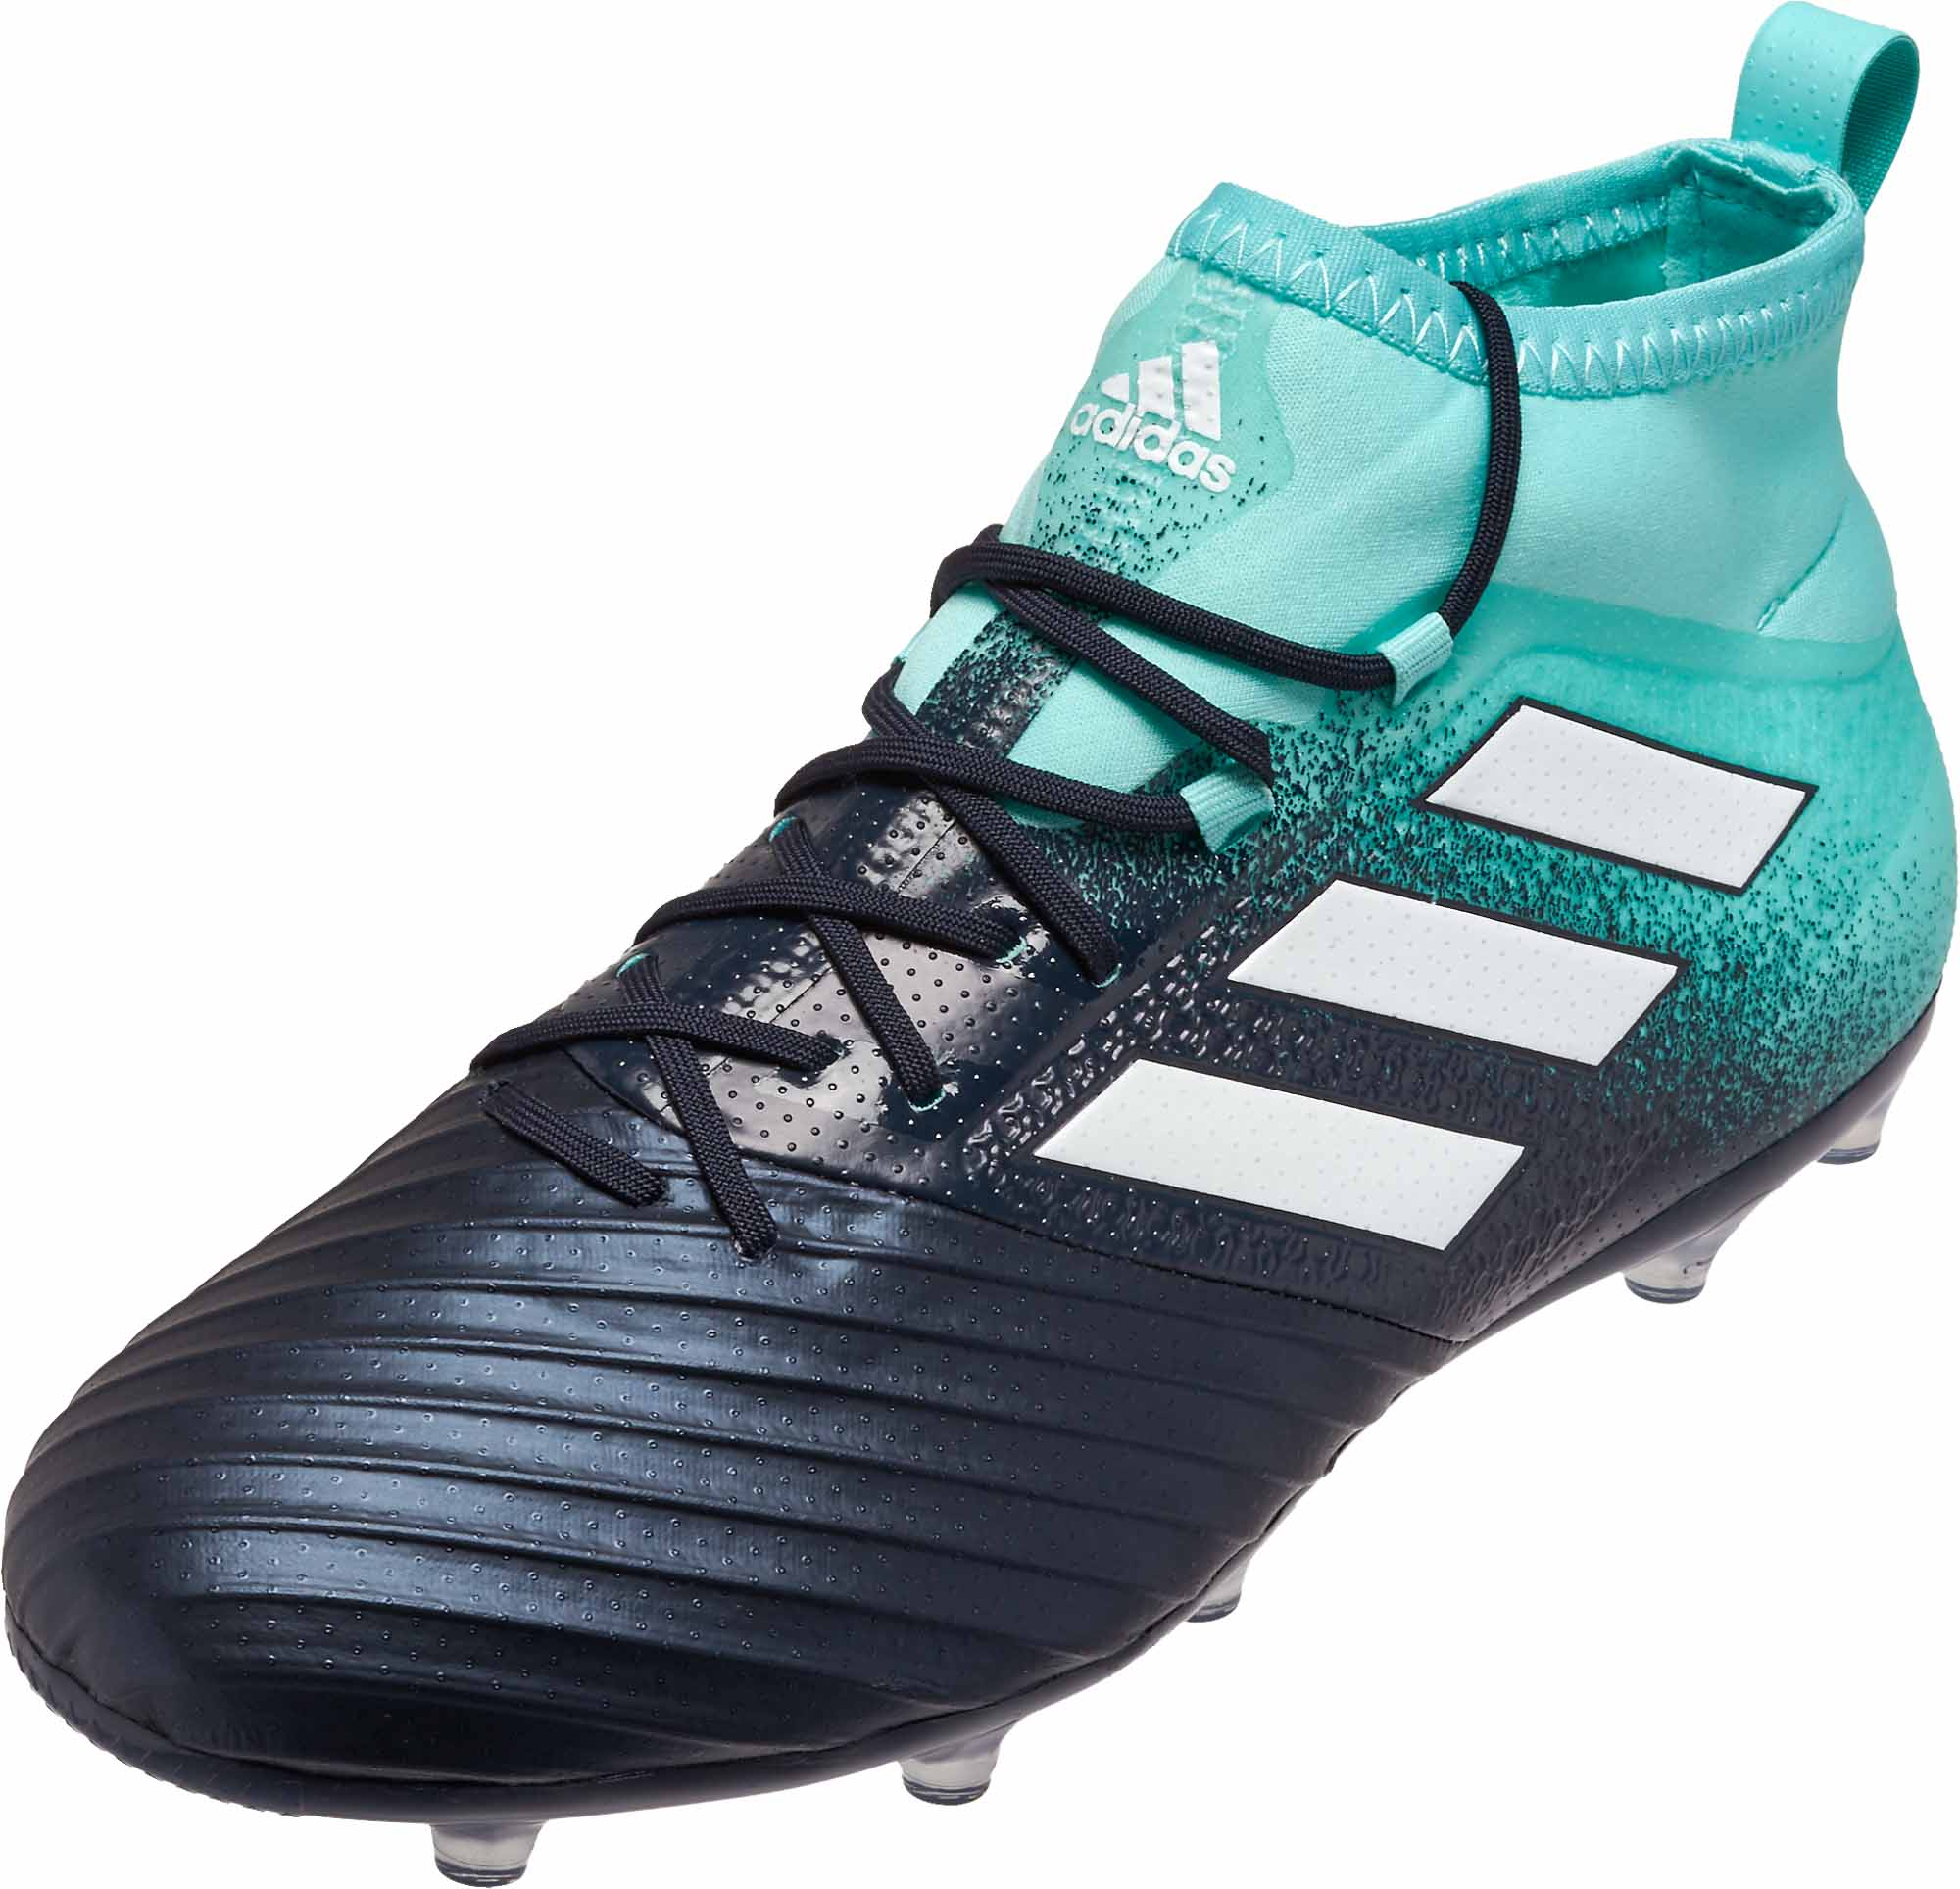 adidas ACE 17.2 FG Soccer Cleats - Energy Aqua & Legend Ink